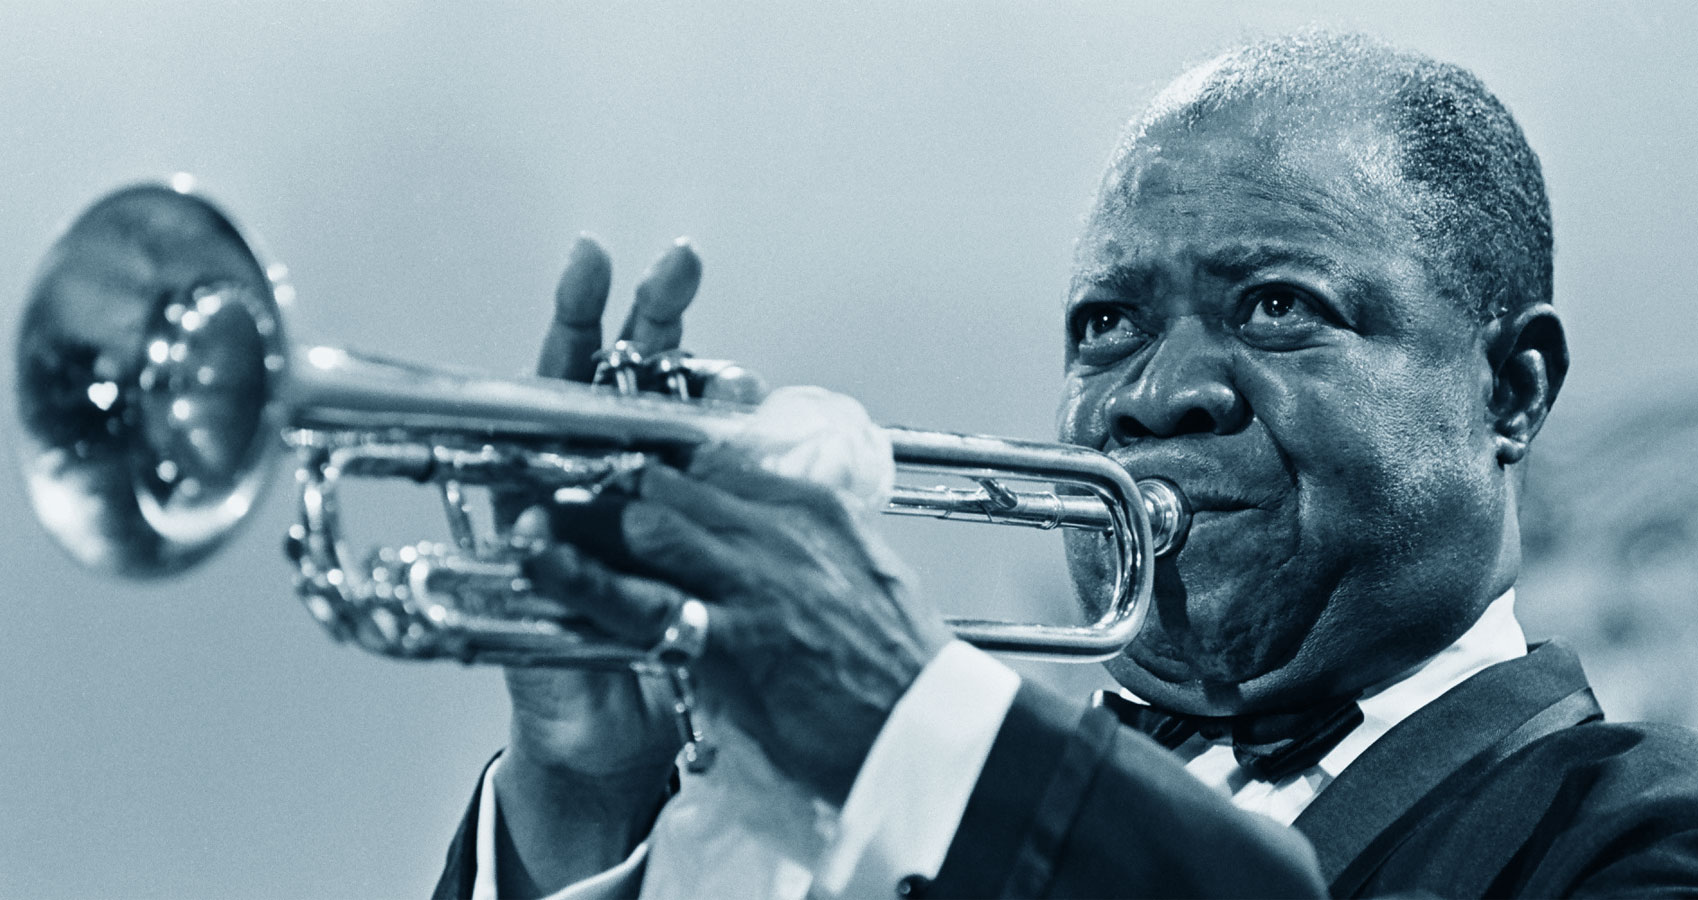 a biography of louis daniel armstrong the american jazz trumpeter Louis armstrong a biography louis armstrong trumpet player, singer biography, louis armstrong, one of the most influential jazz artists of all time, is remembered for.